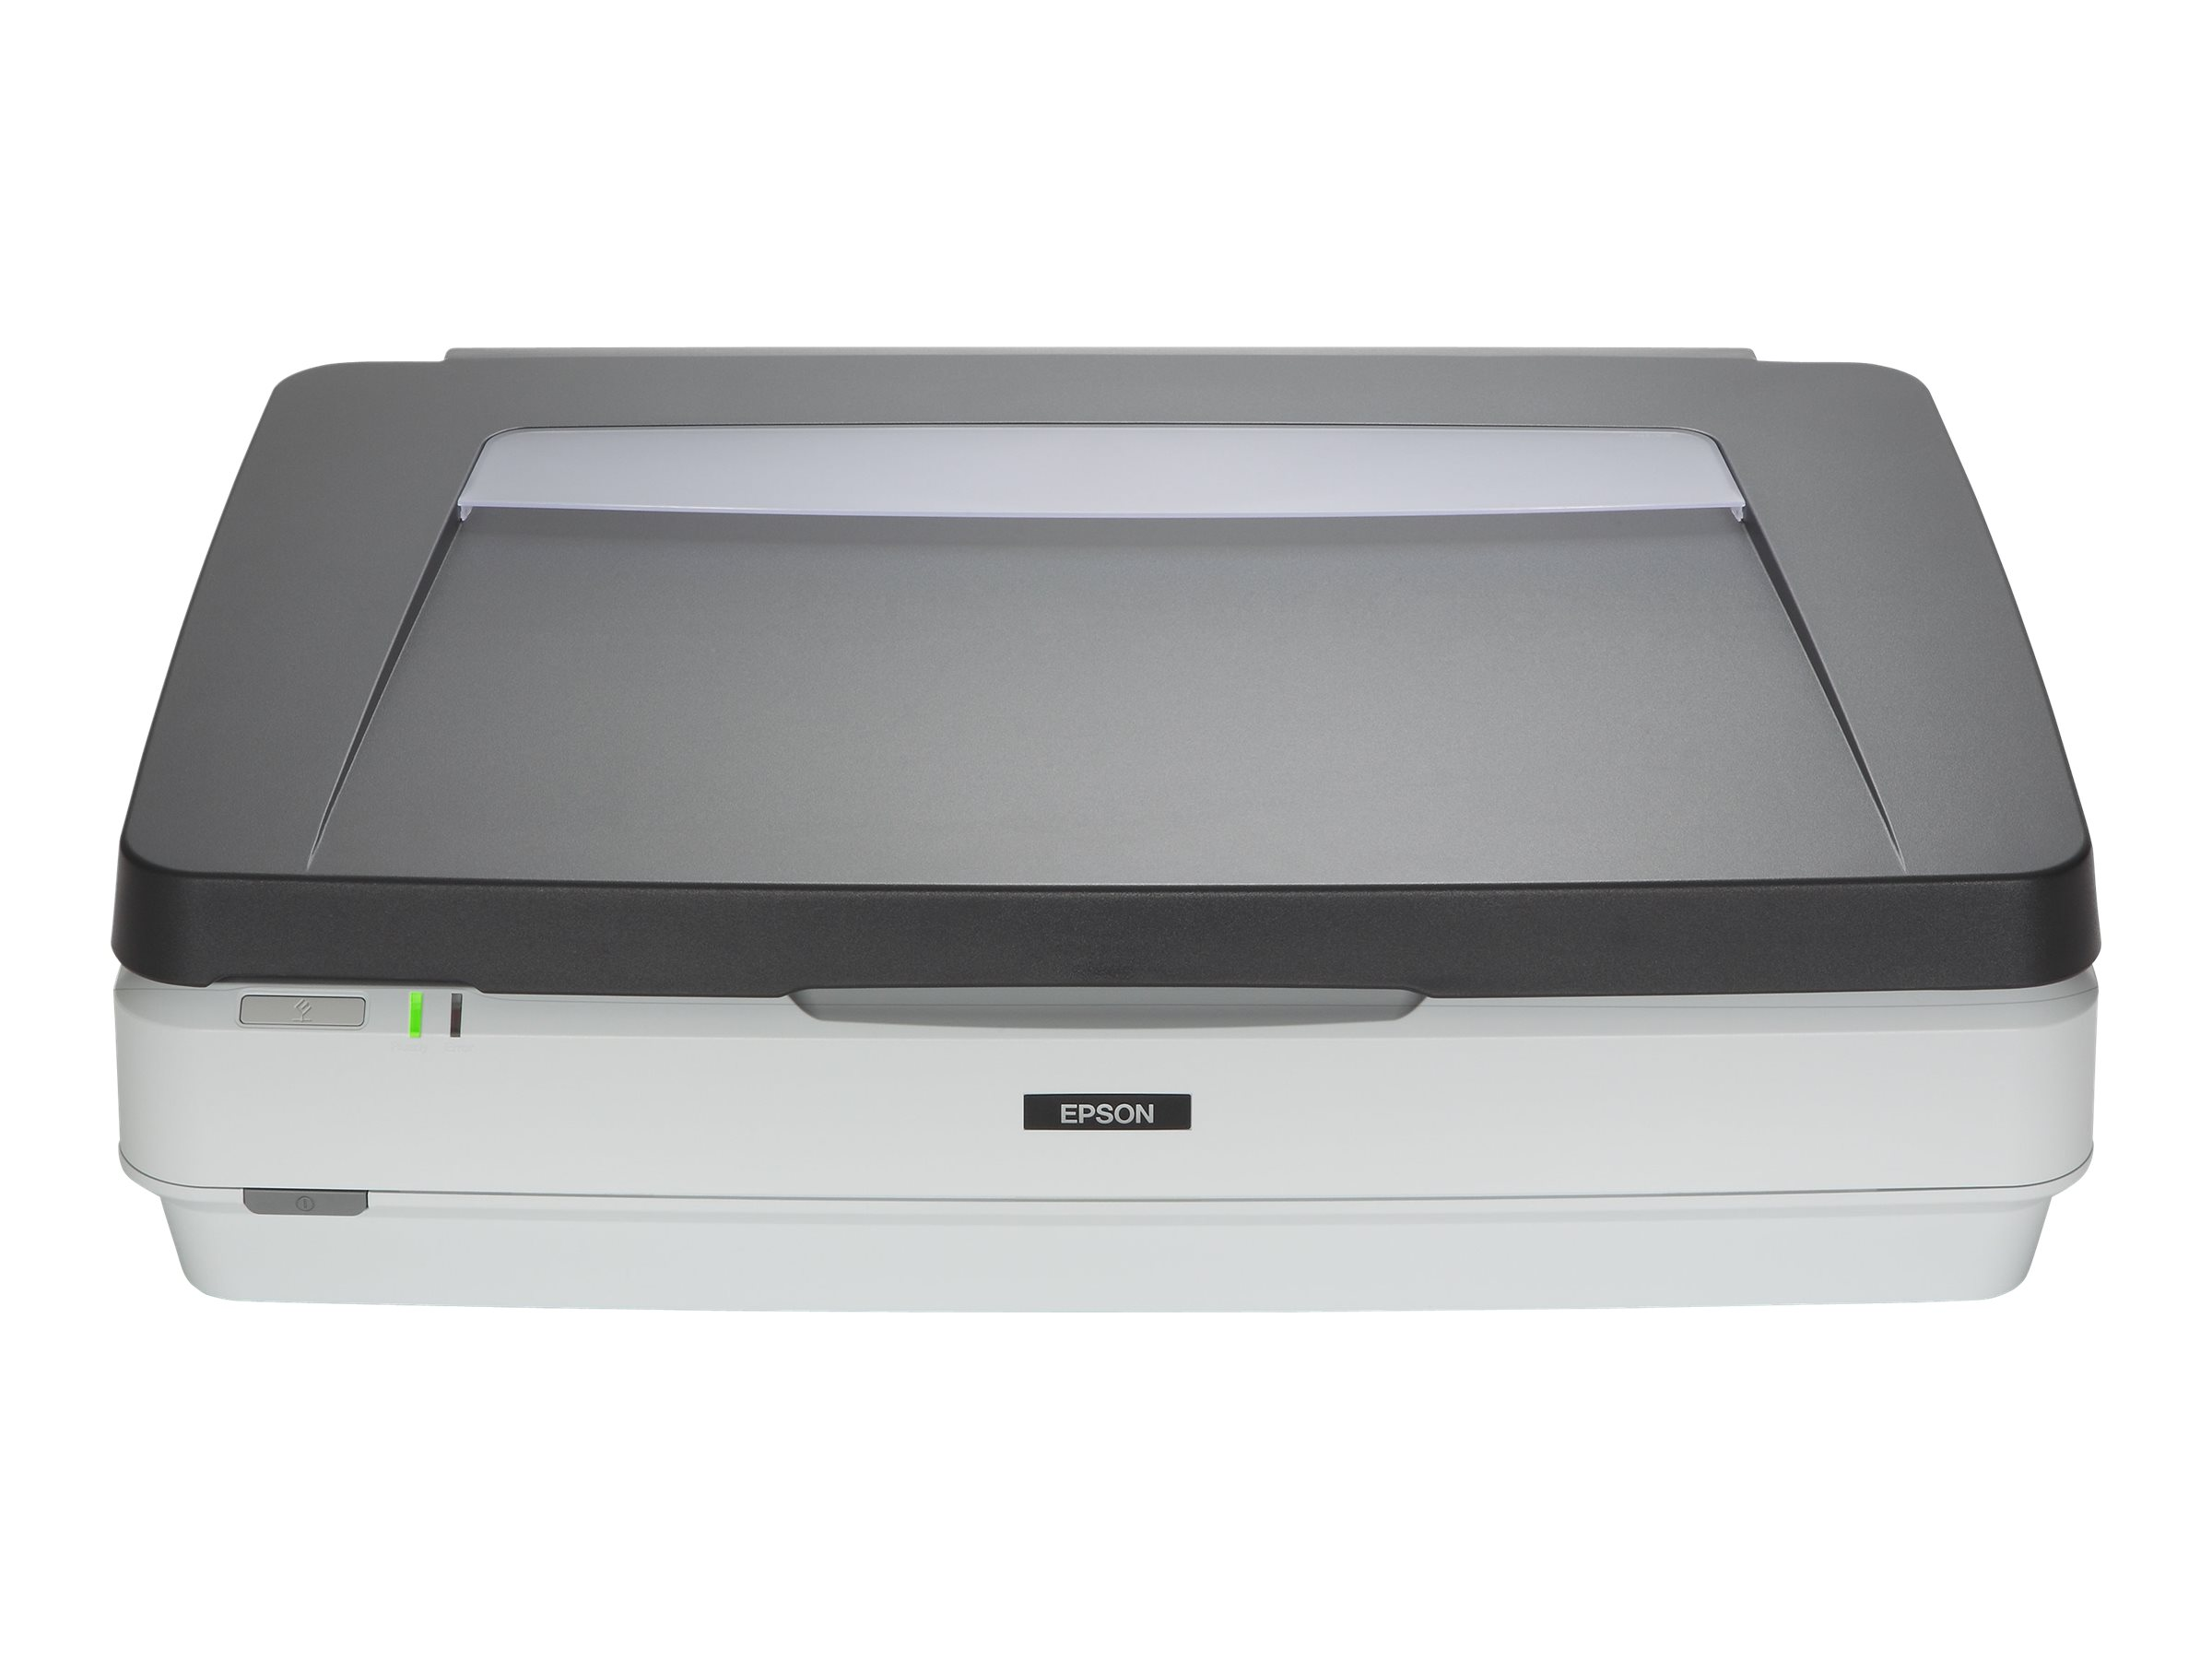 Epson Expression 12000XL Pro - Scanner à plat - A3 - 2400 ppp x 4800 ppp - USB 2.0